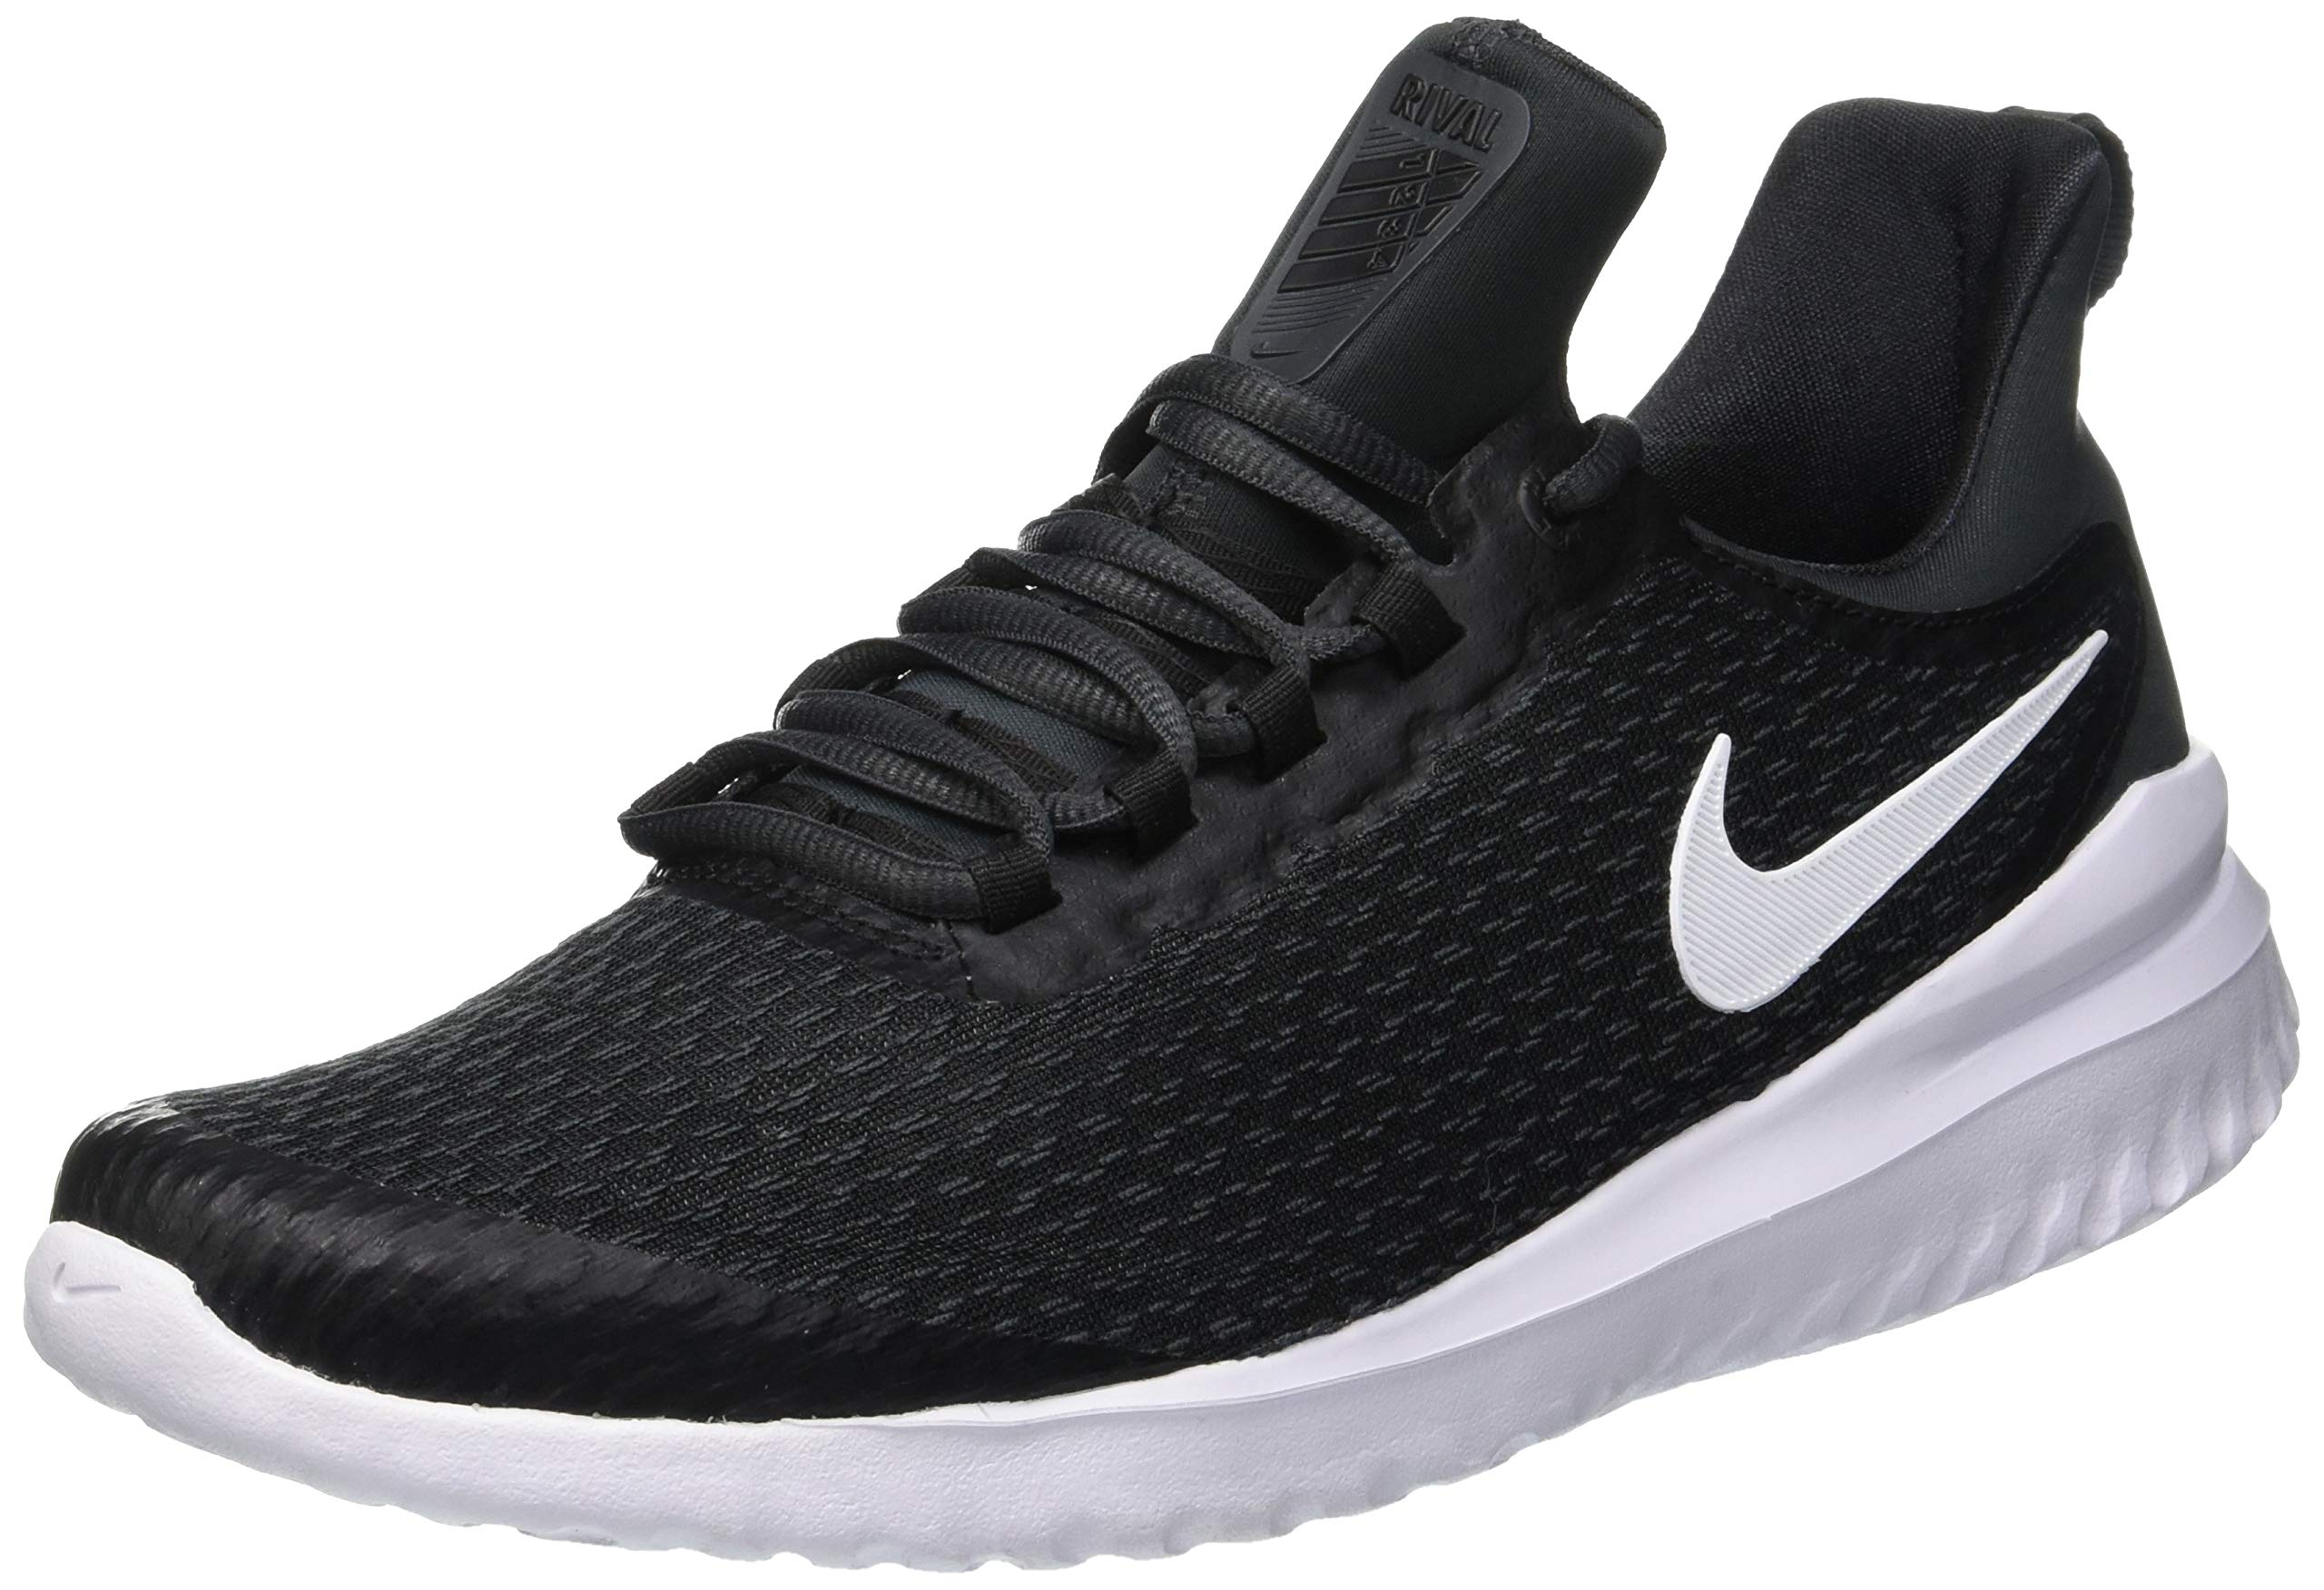 08702f132a1 Galleon - NIKE Renew Rival Mens Aa7400-001 Size 12.5